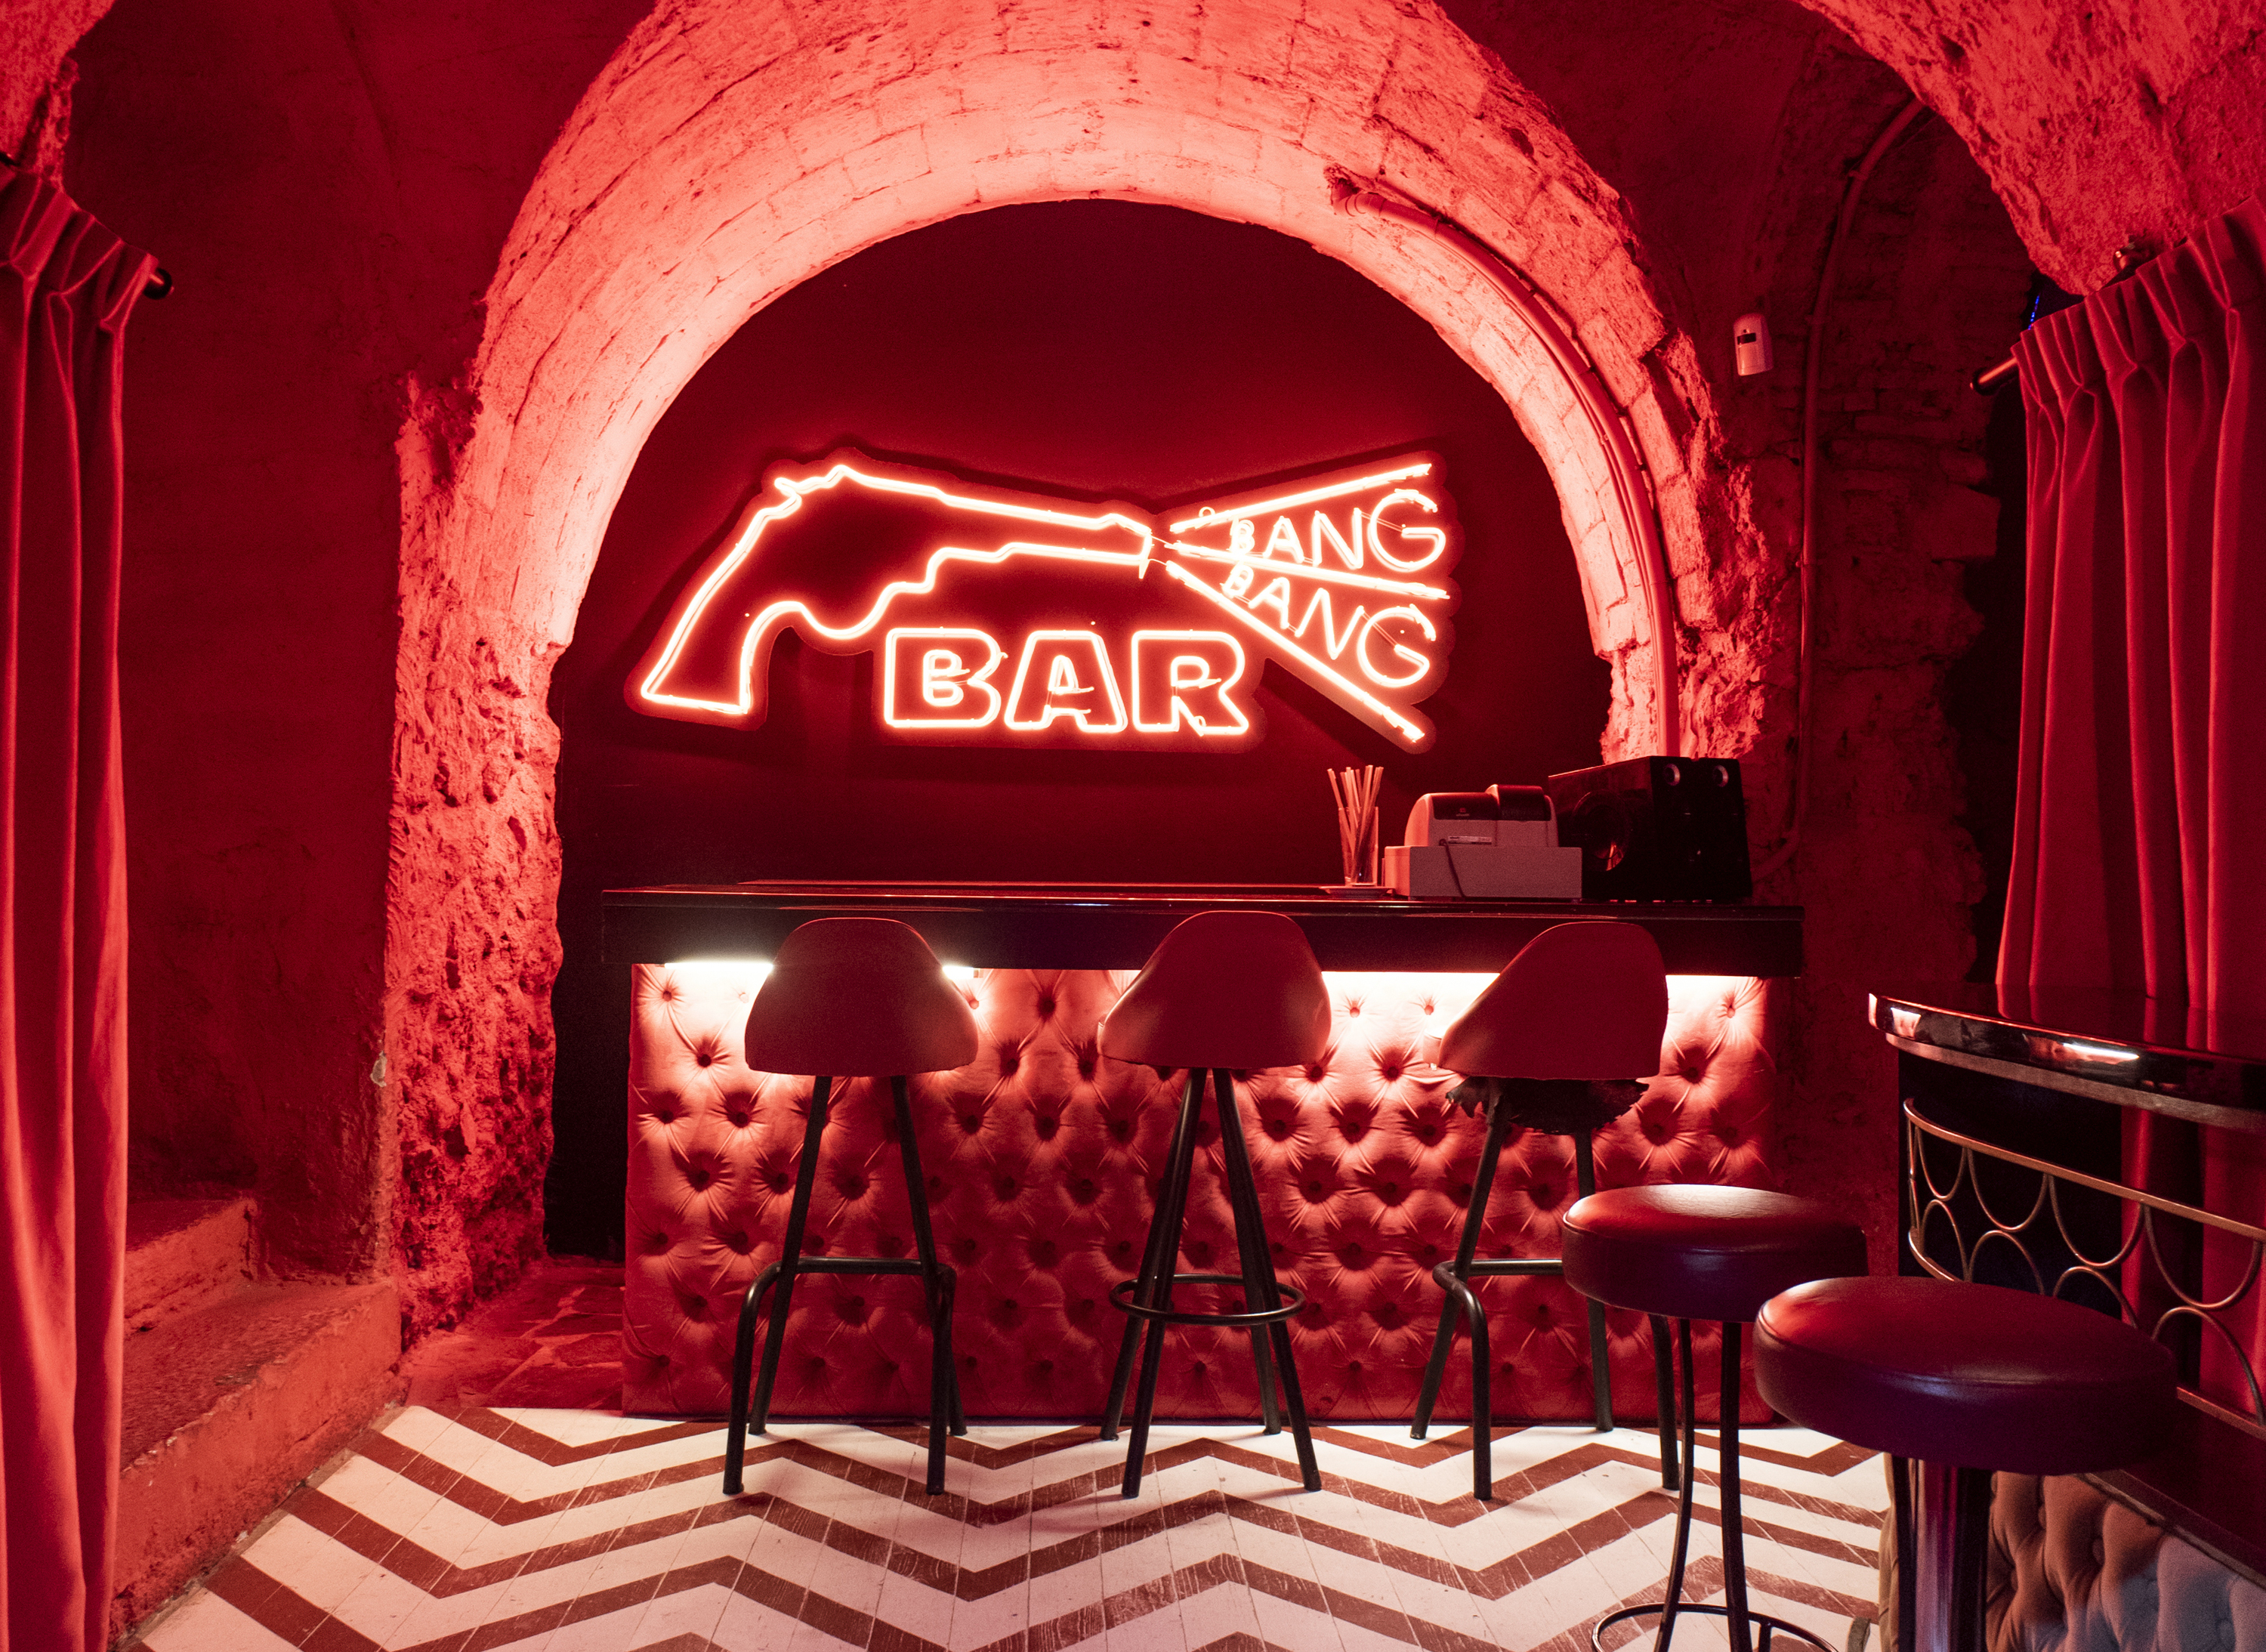 The best spots for nightlife in Madrid